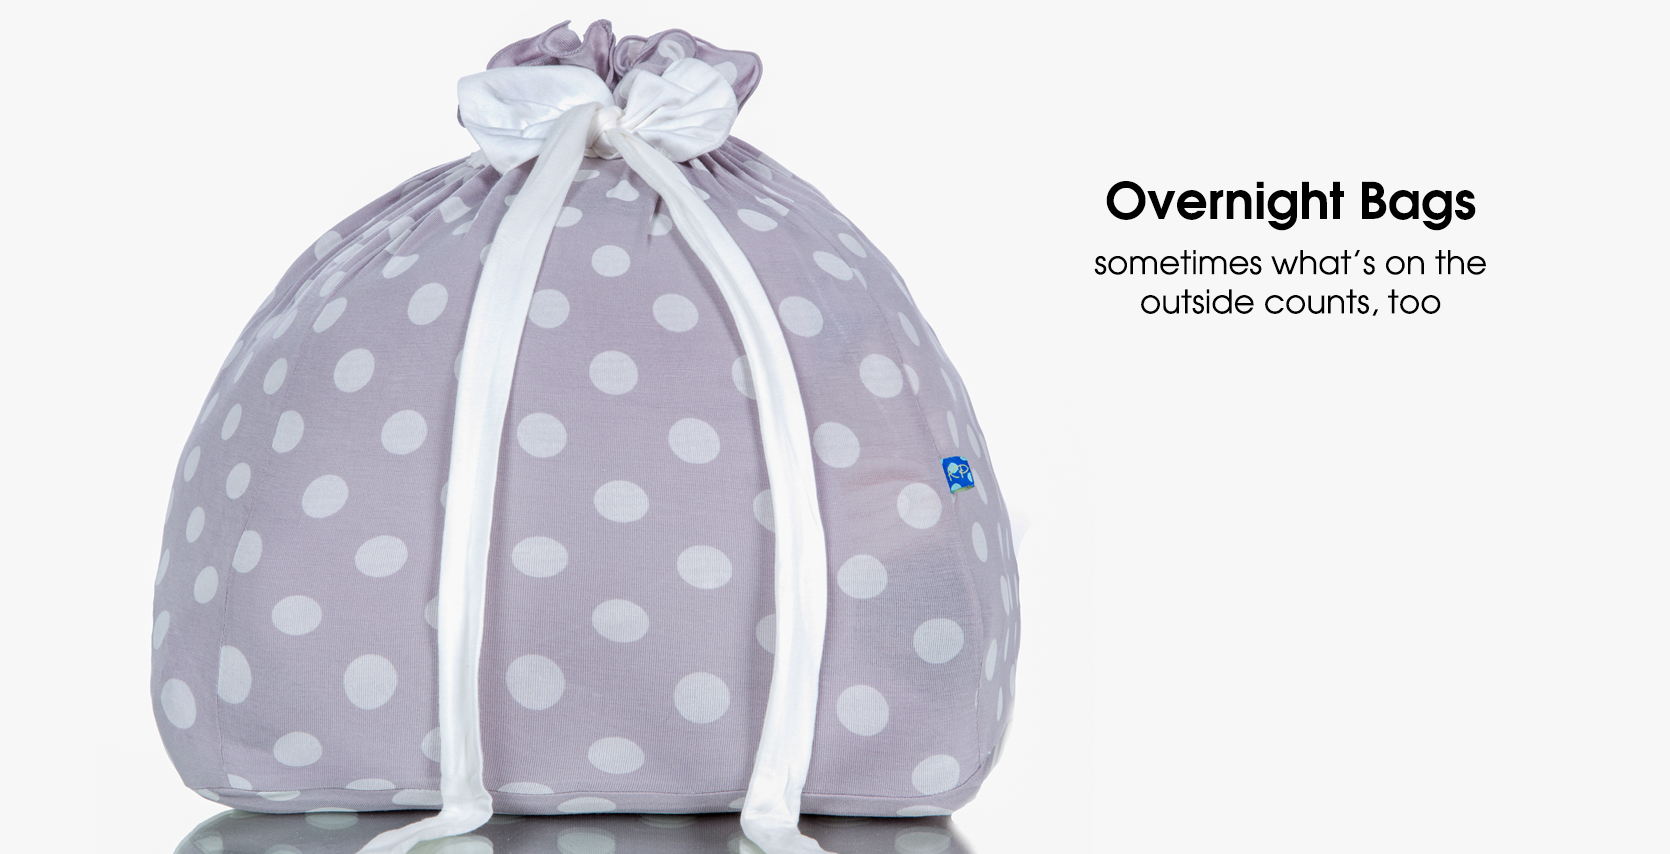 Overnight Bags